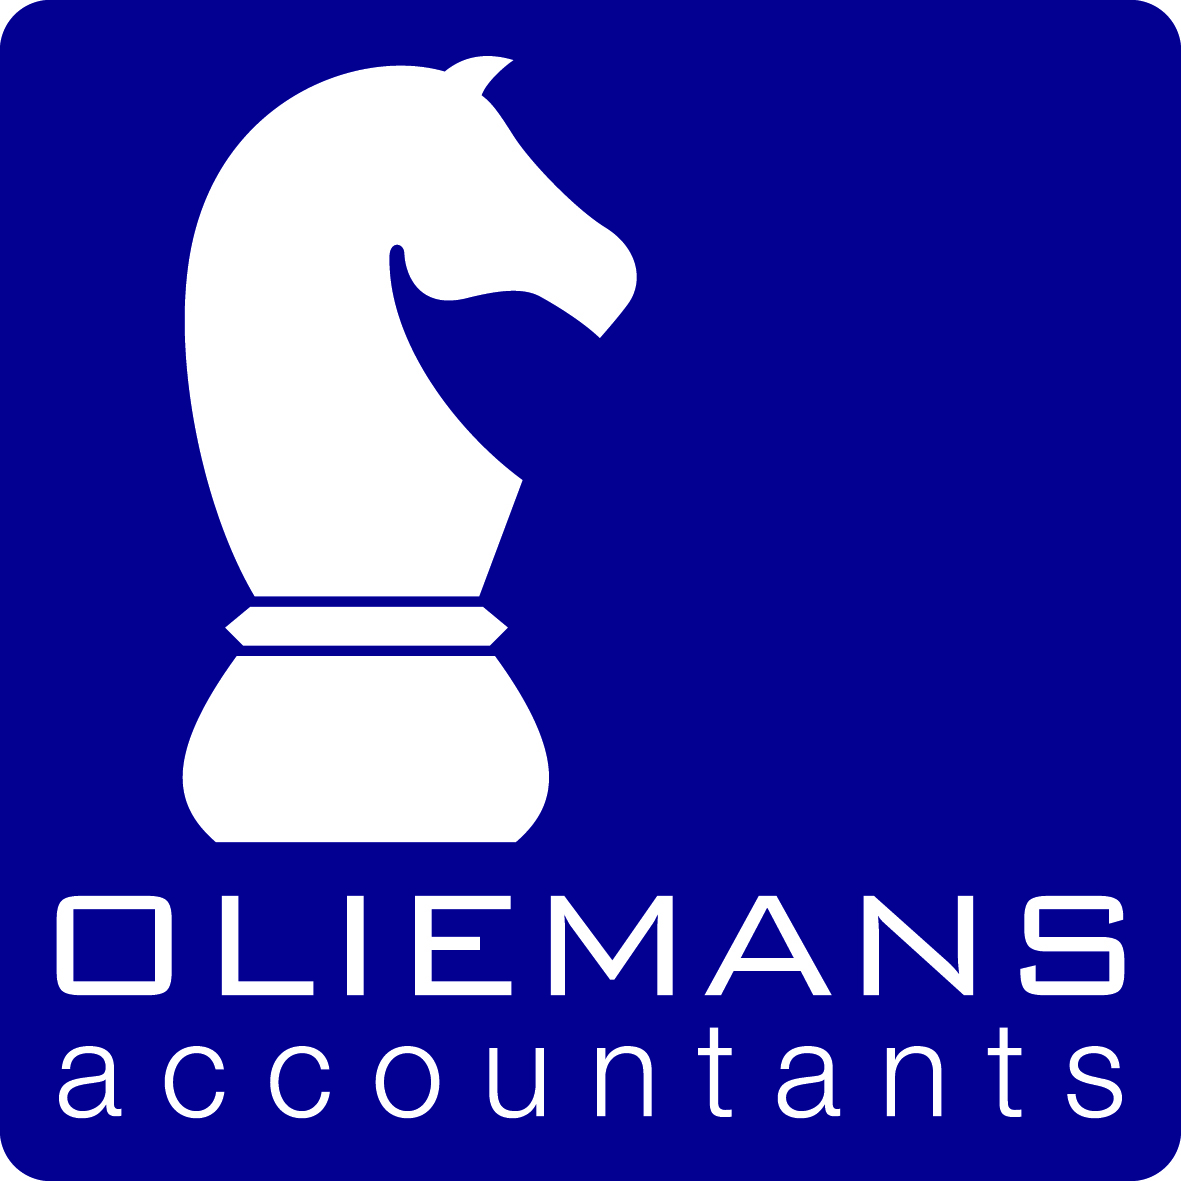 Oliemans Accountants